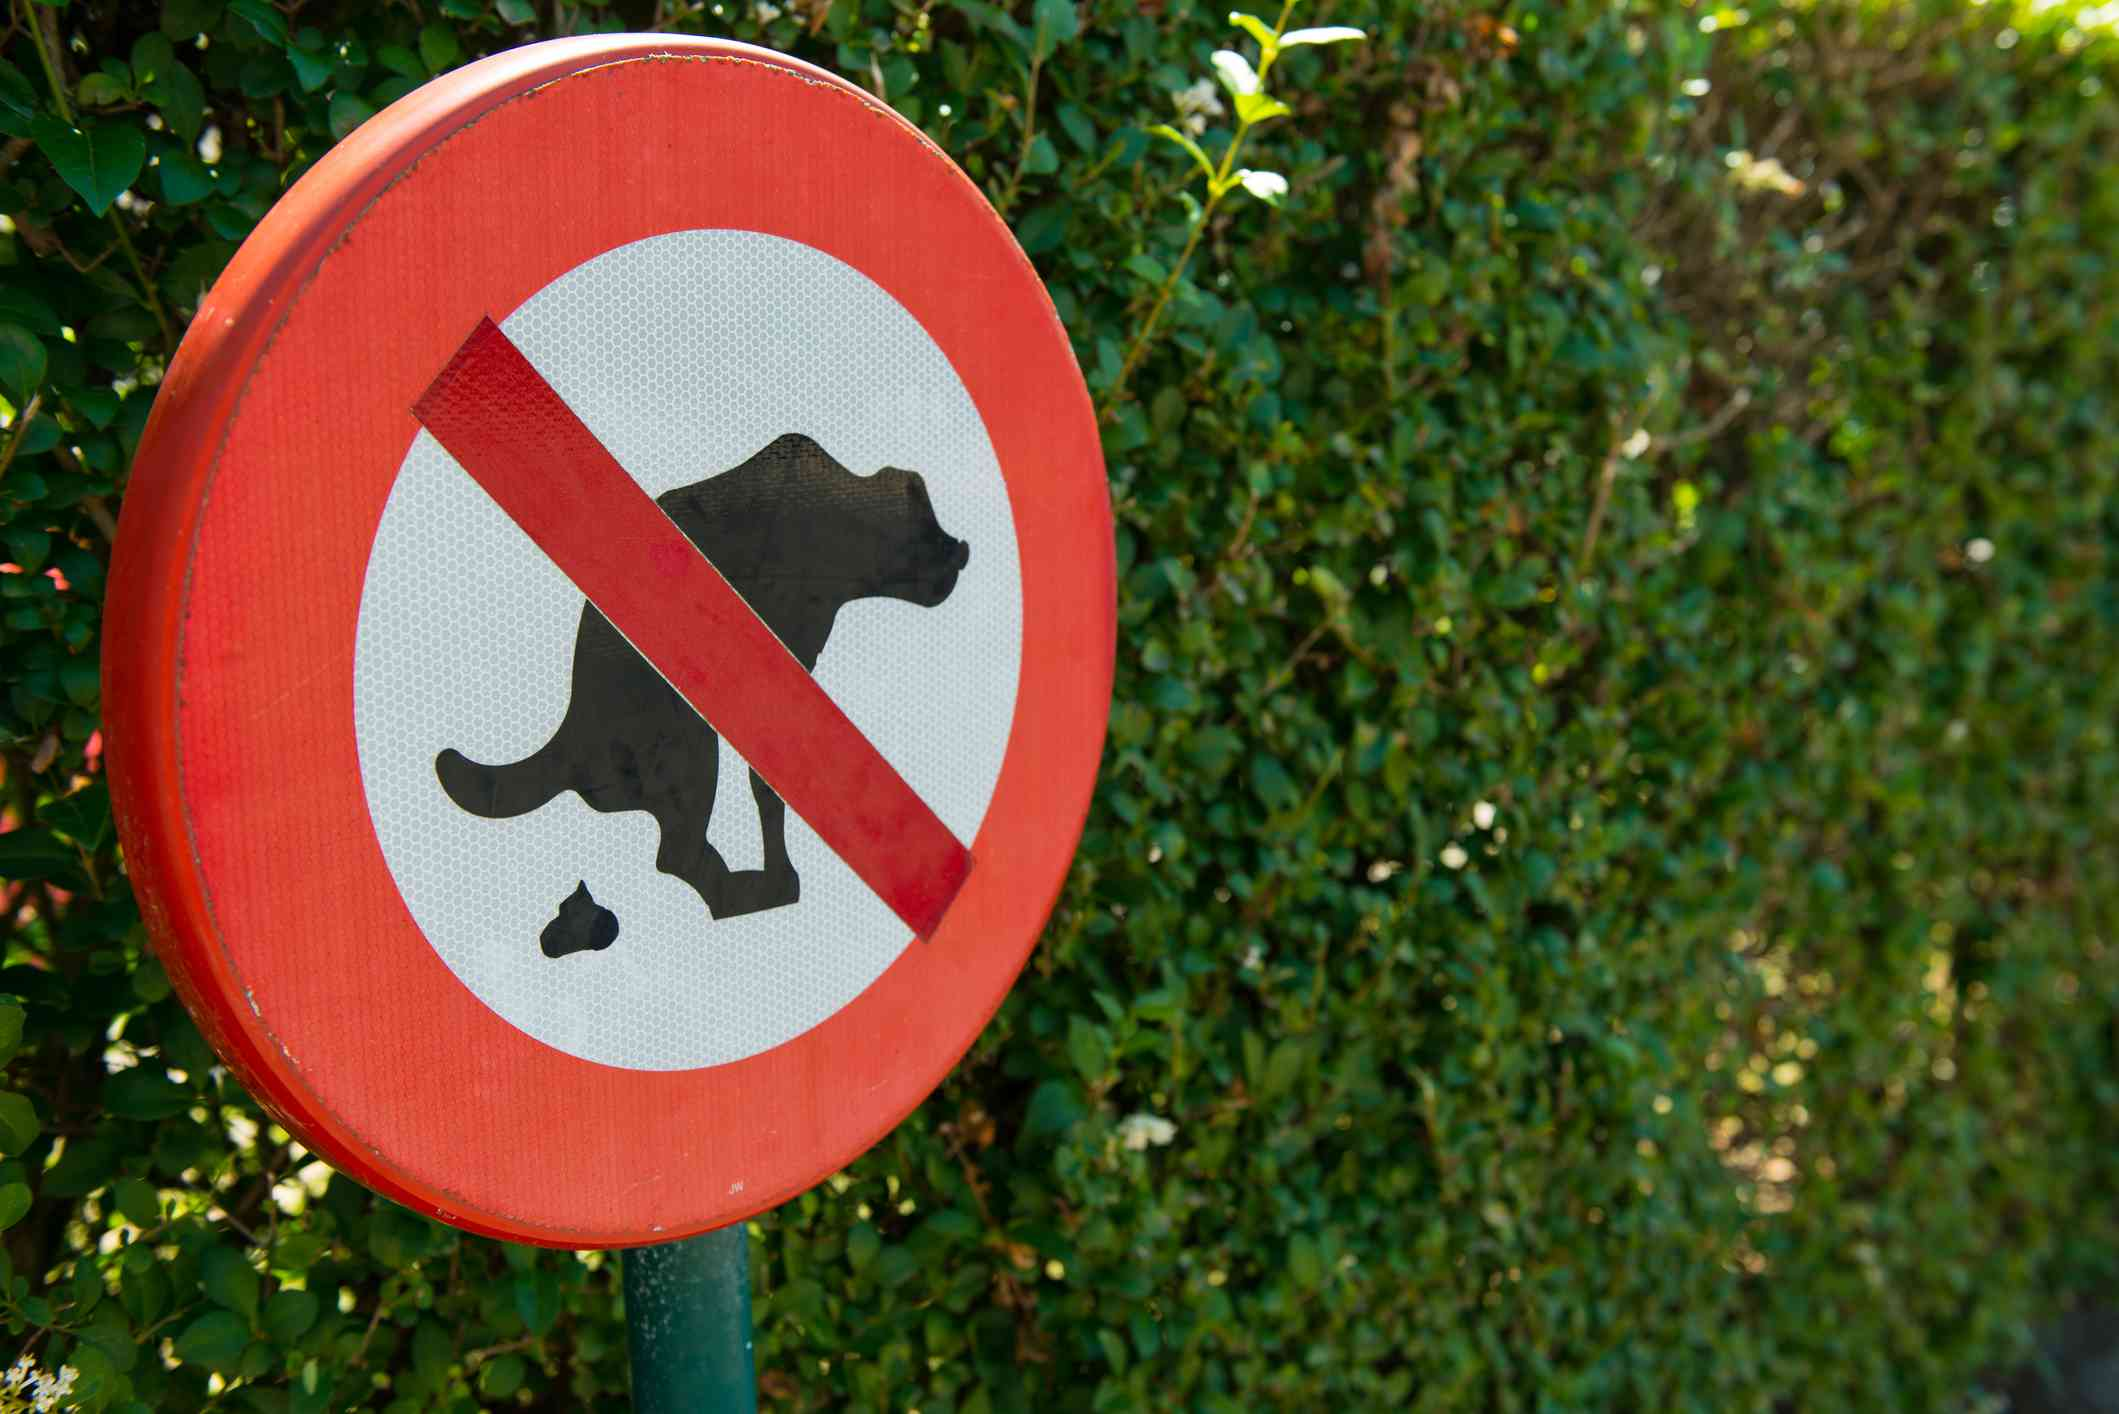 No dog pooping sign in the park